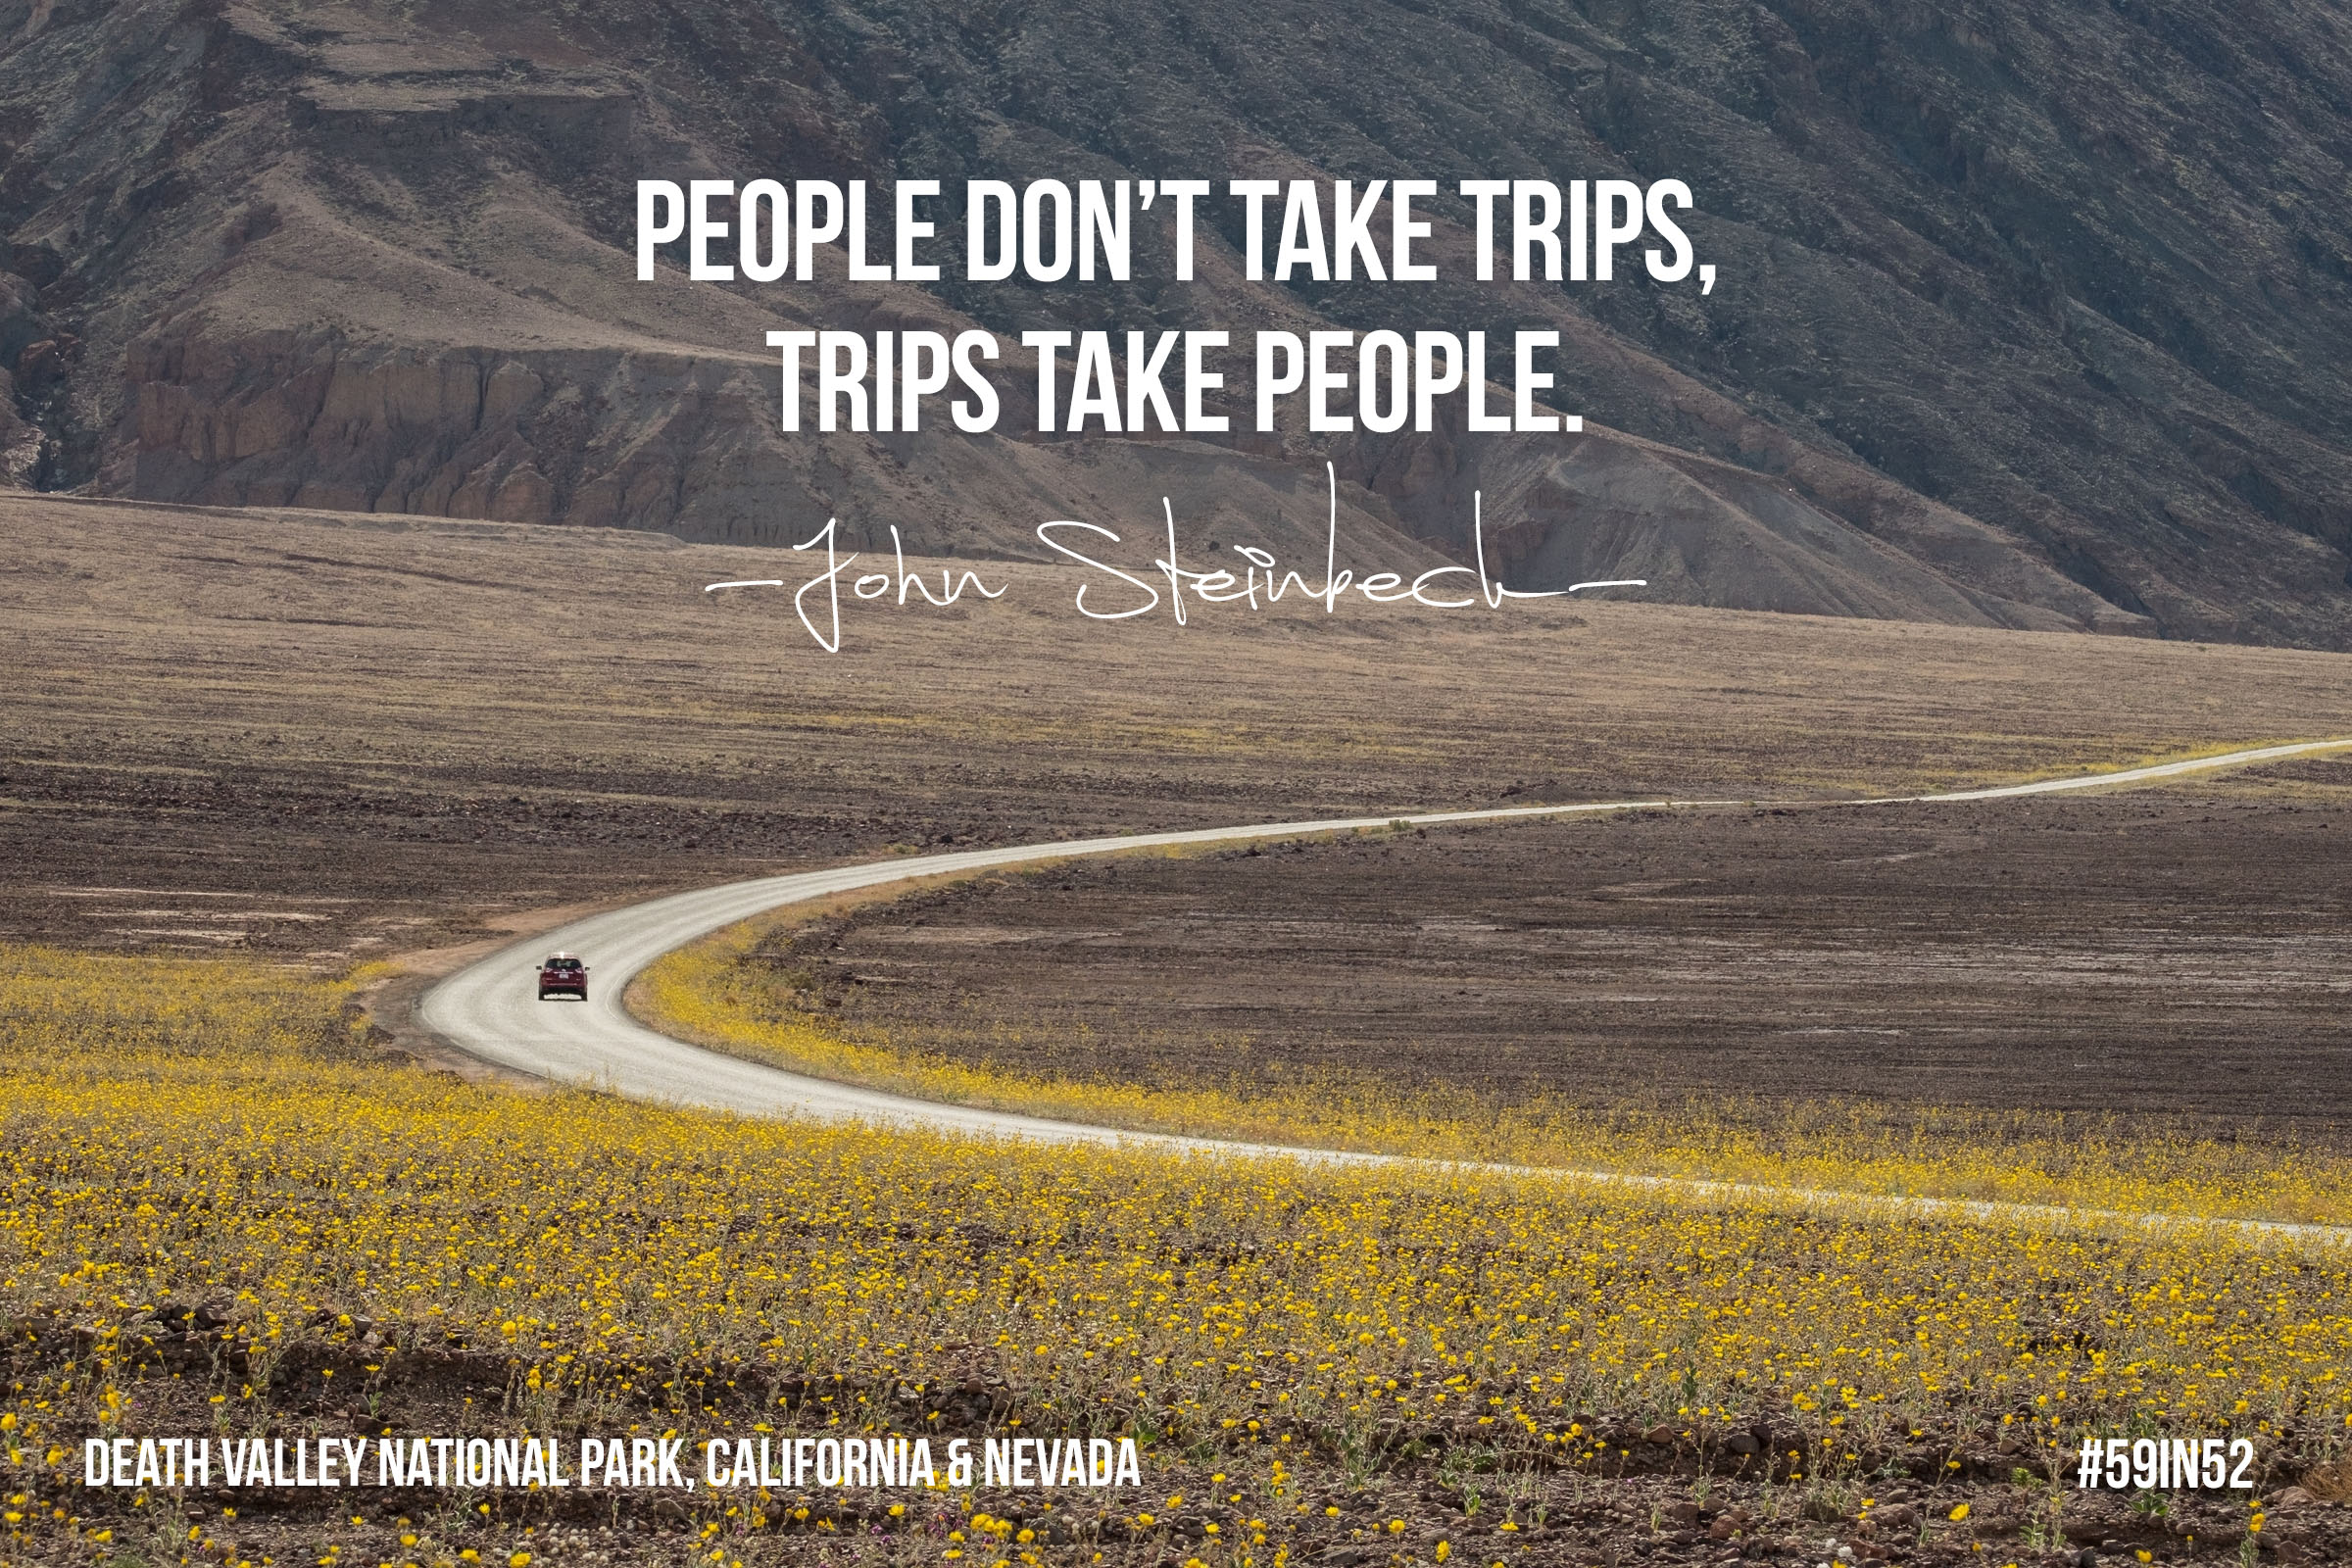 'People don't take trips, trips take people.'  – John Steinbeck